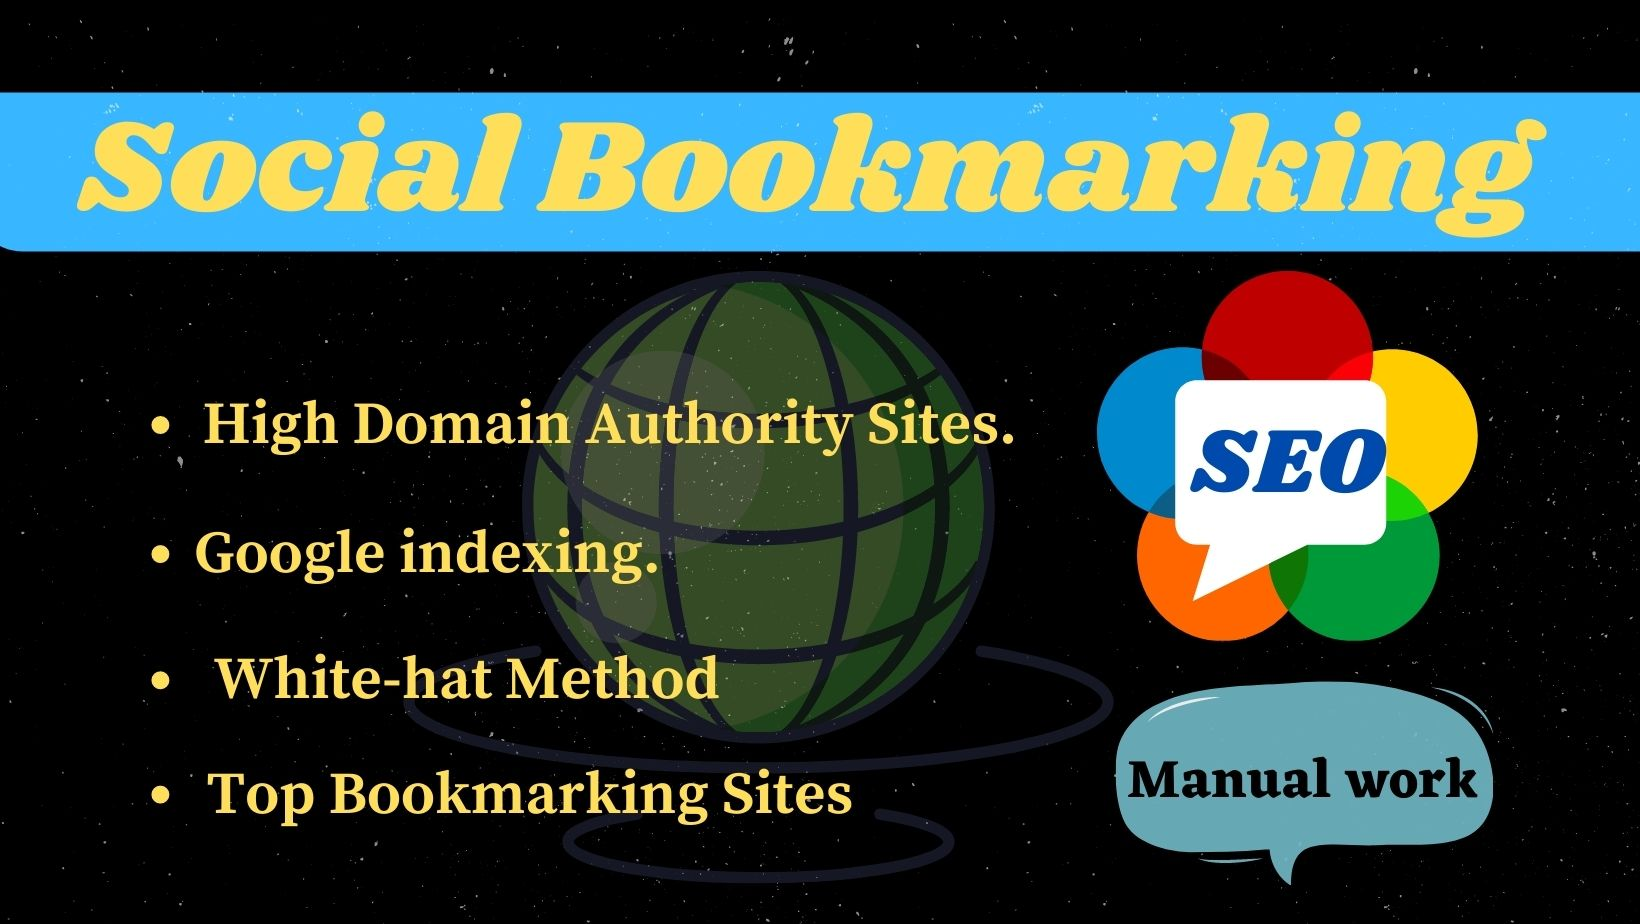 I will create 20 social bookmarking for your website on high da sites with google indexing.